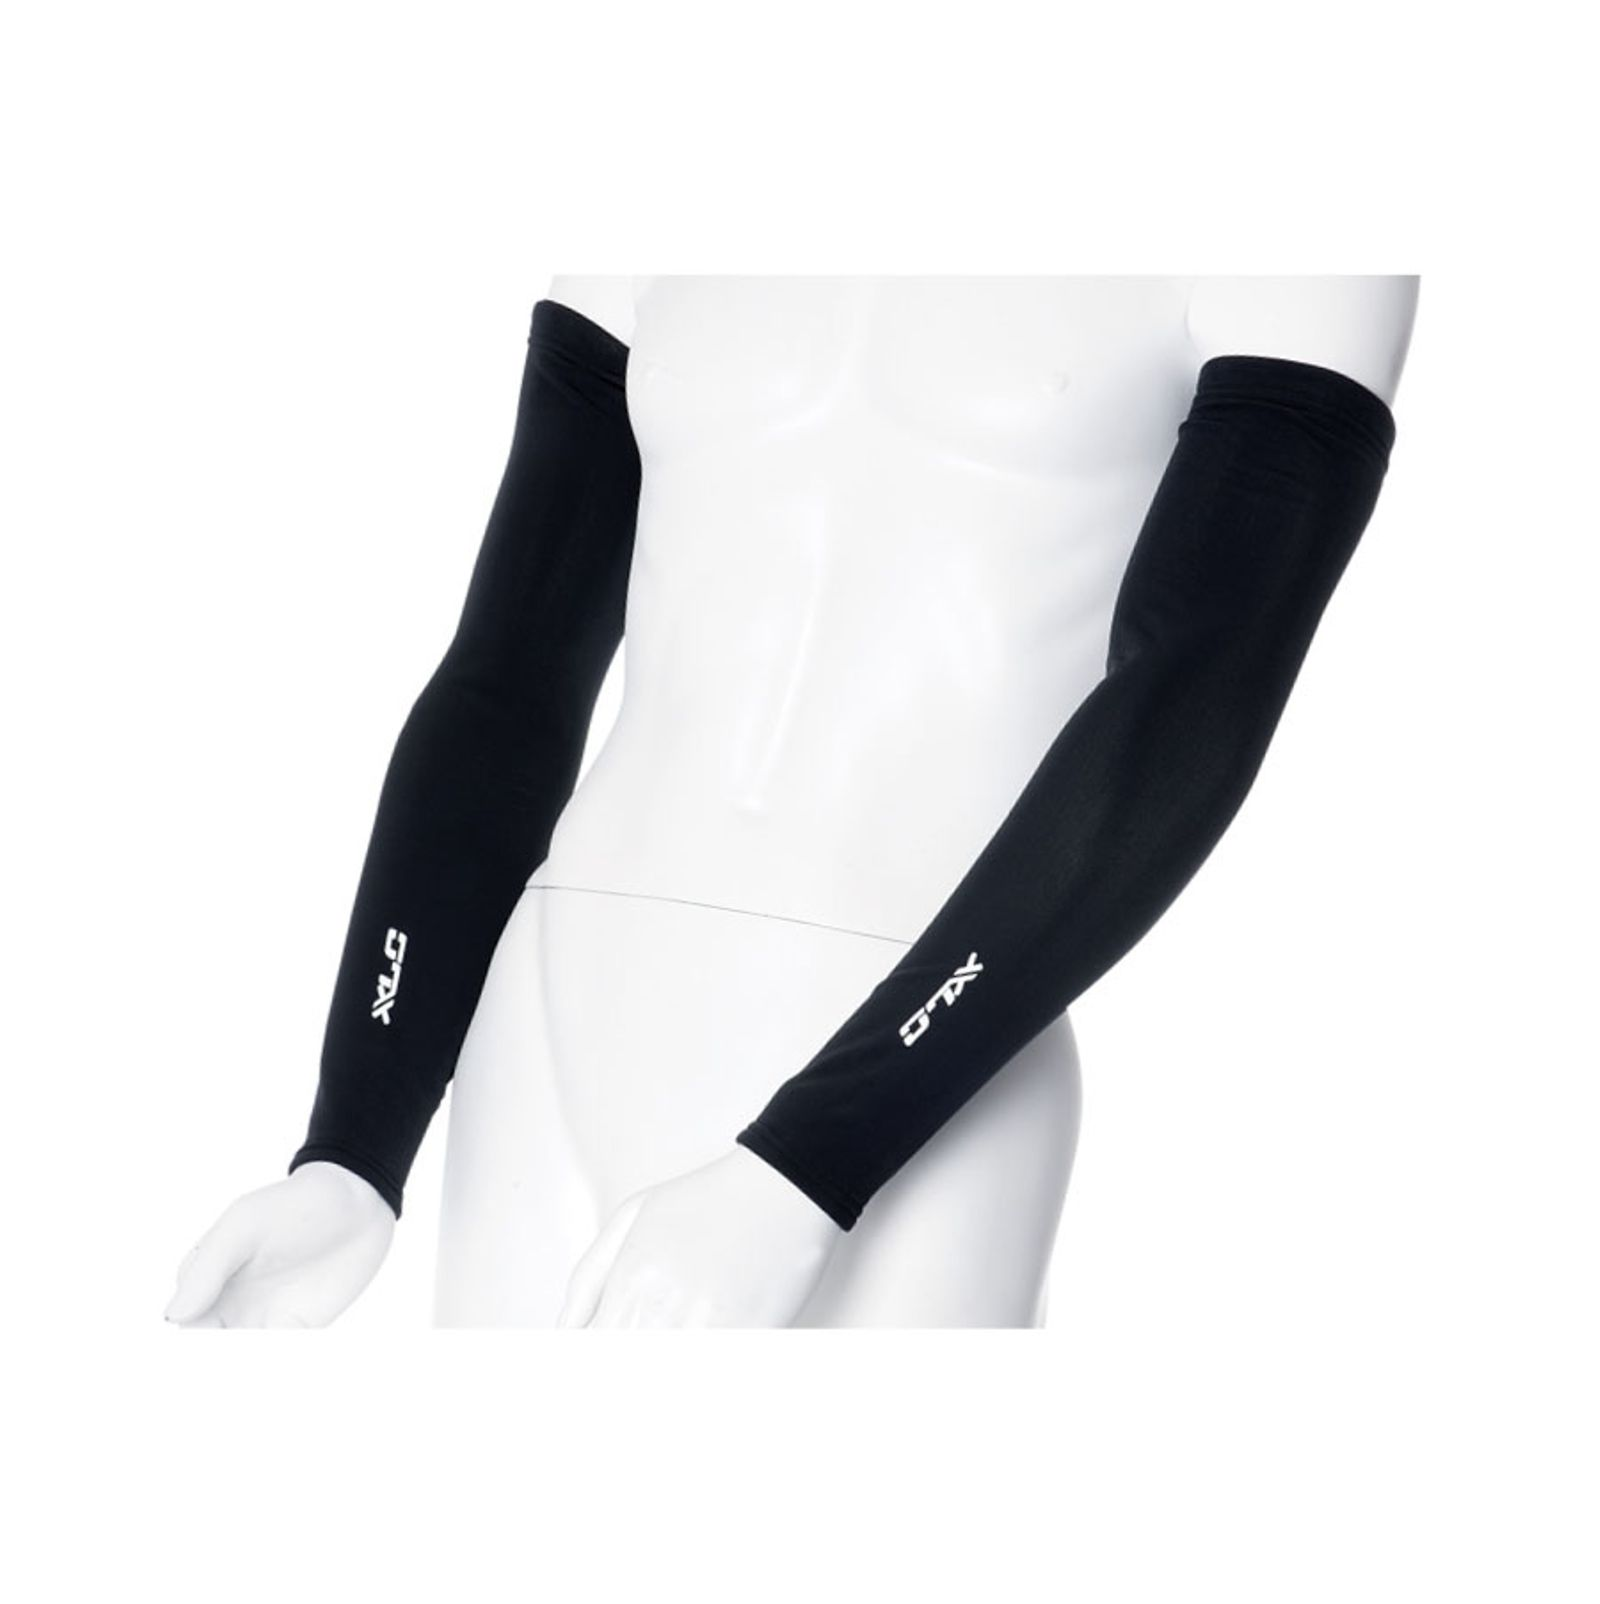 Arm, leg, knee warmers